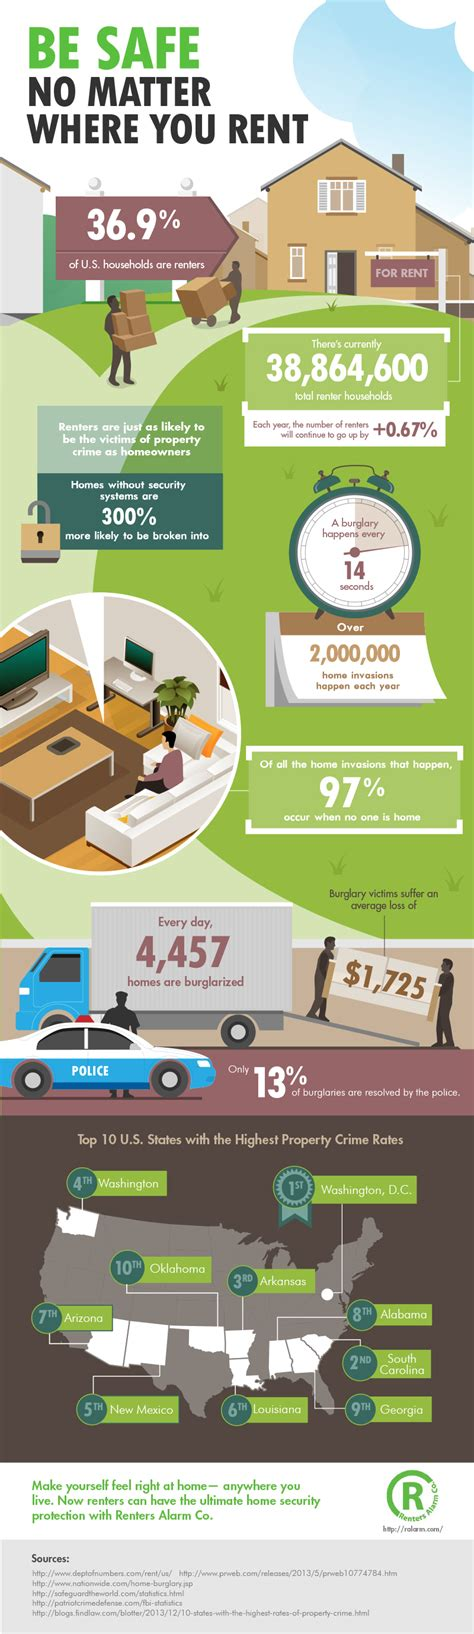 adt home security infographic